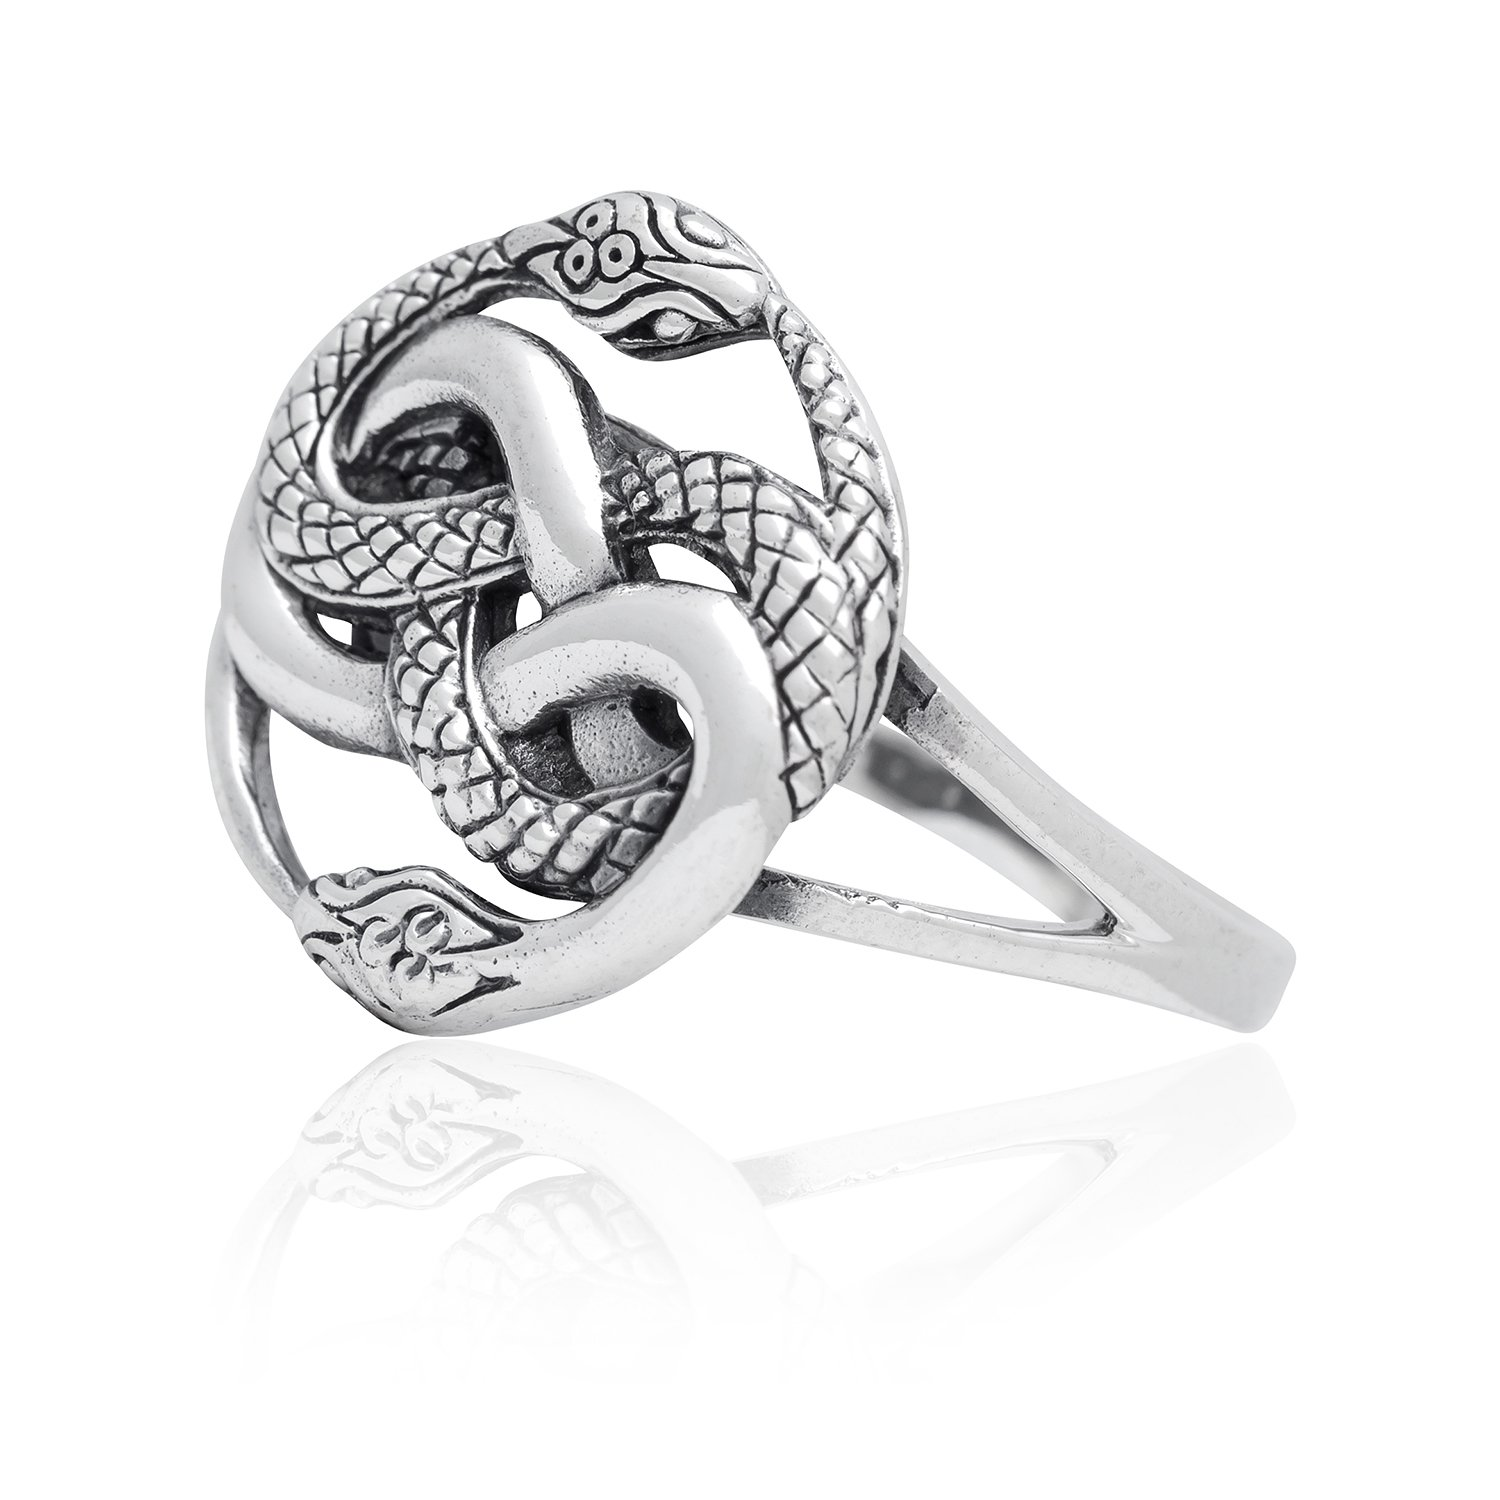 925 Sterling Silver Ouroboros Uroboros Serpent Snake Infinity Eating Tail Ring